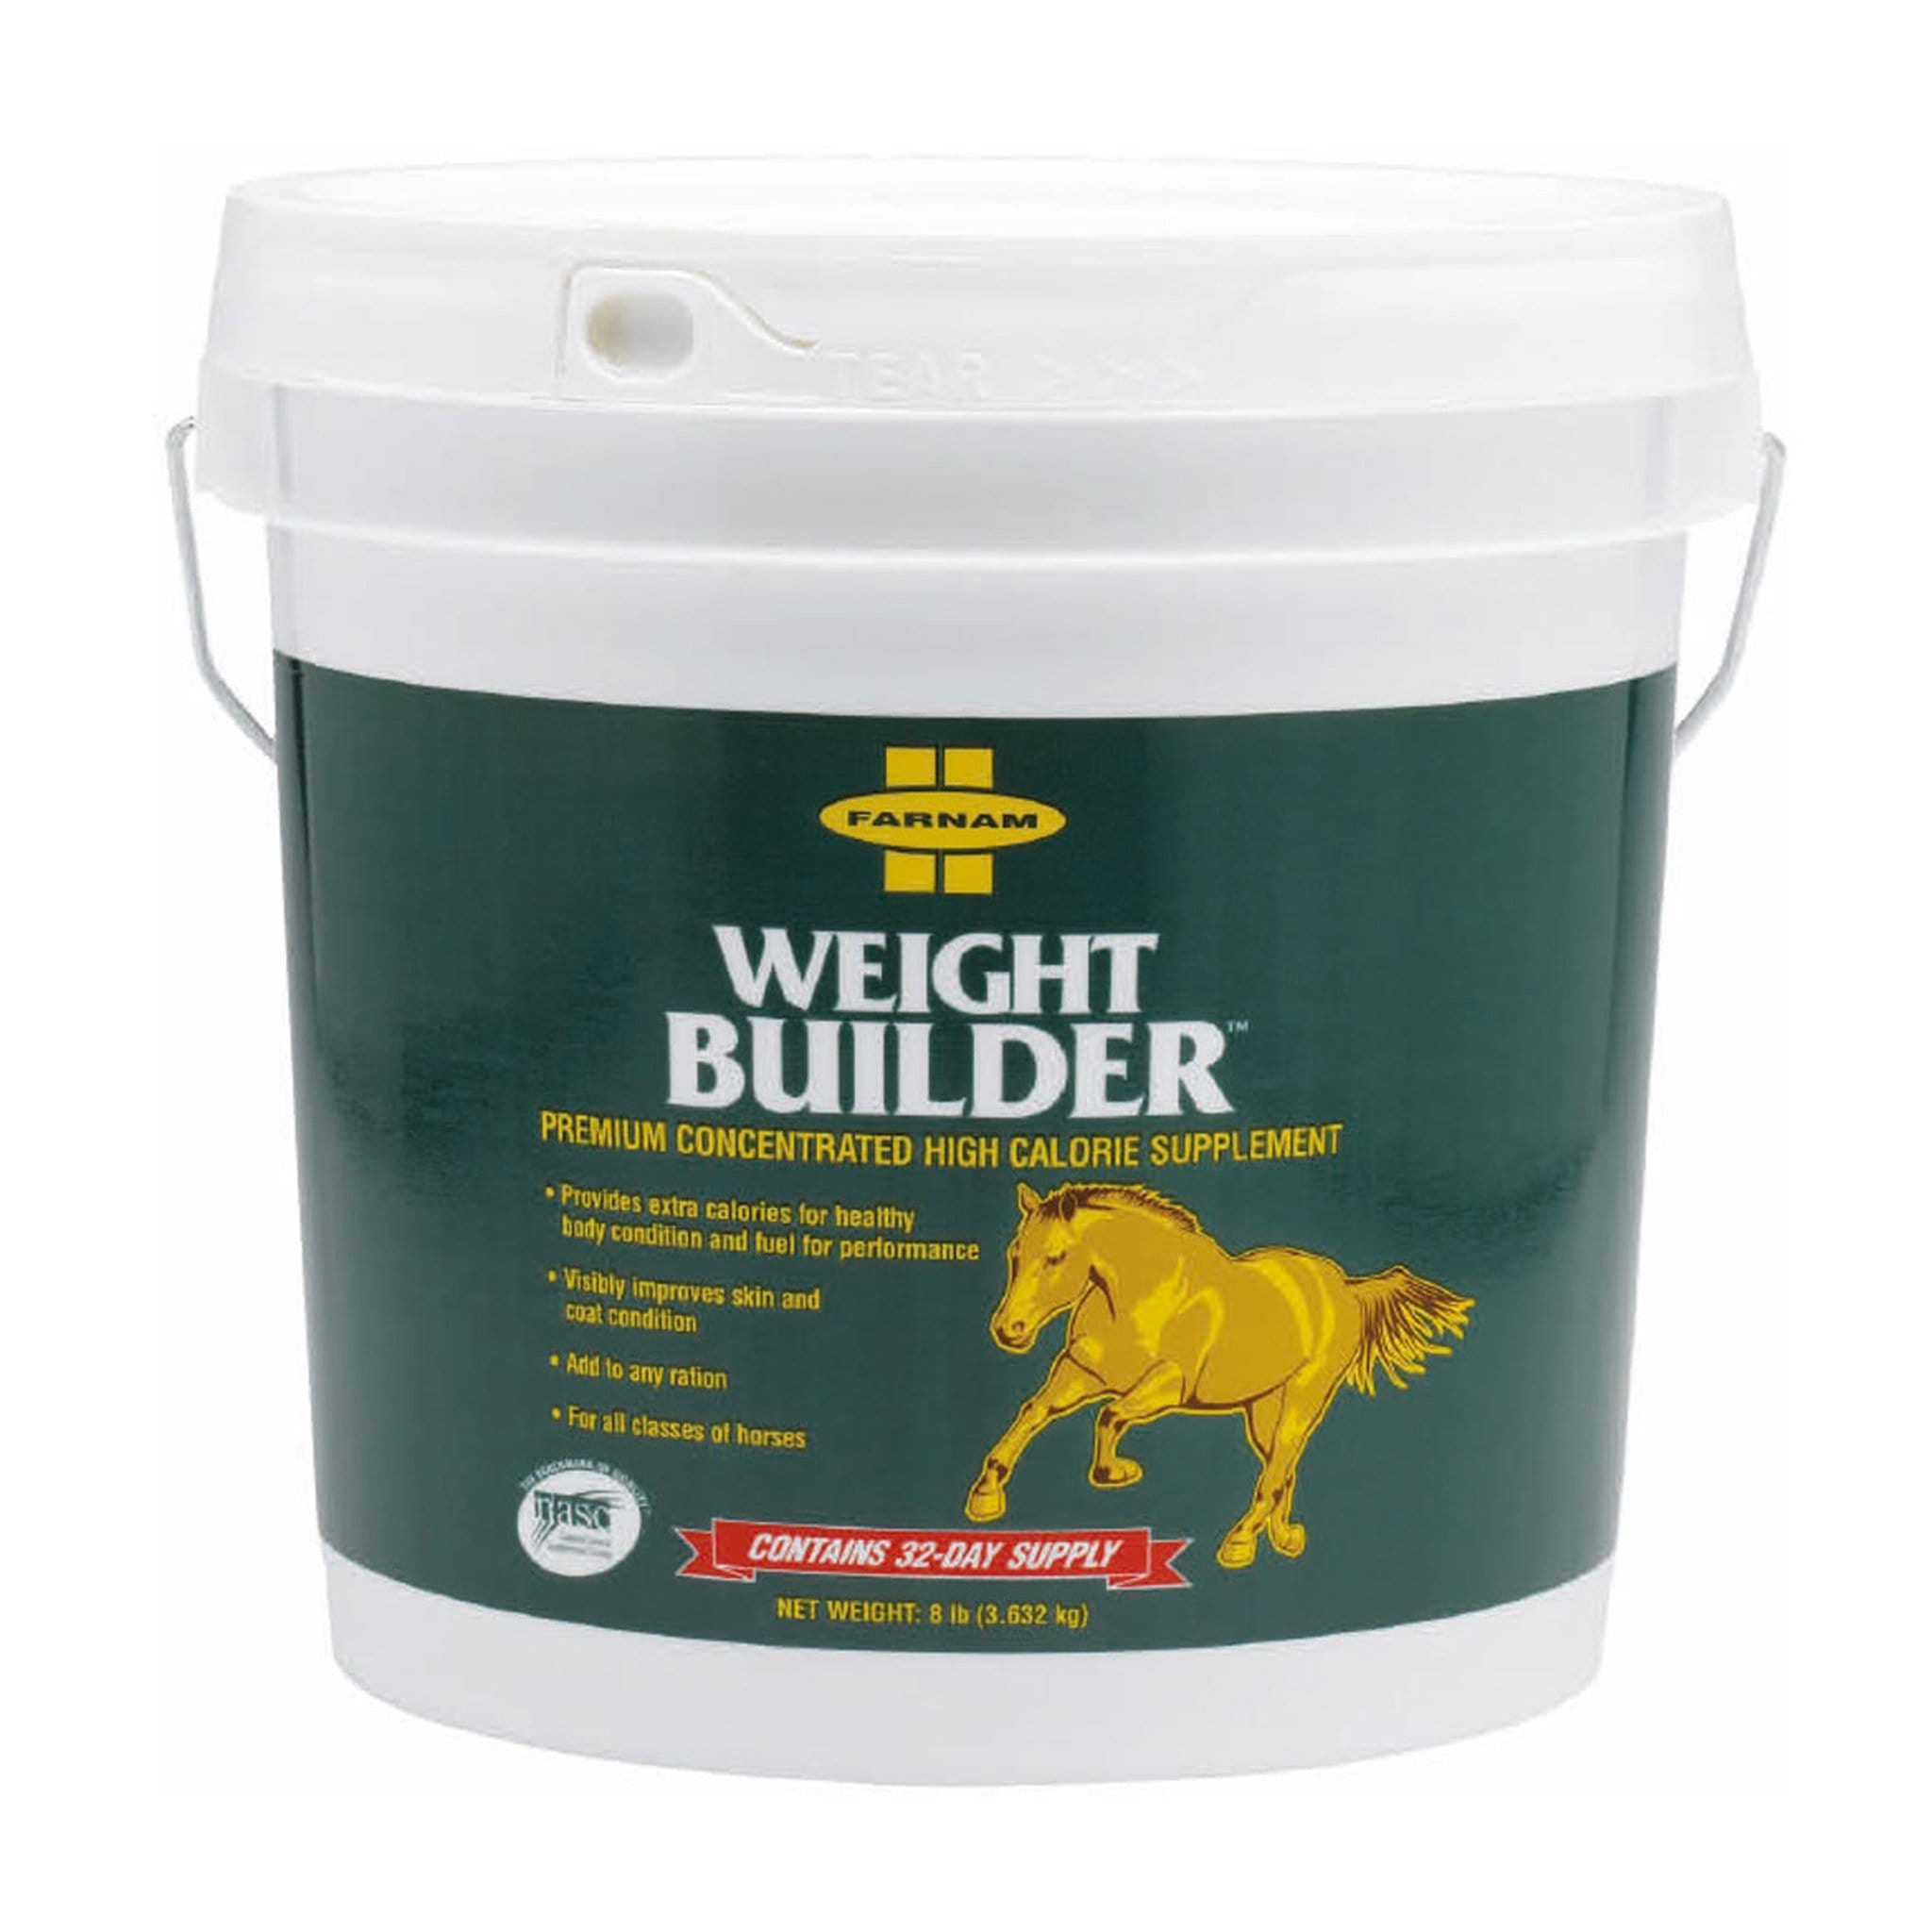 Farnam Weight Builder 3.6KG 6560.